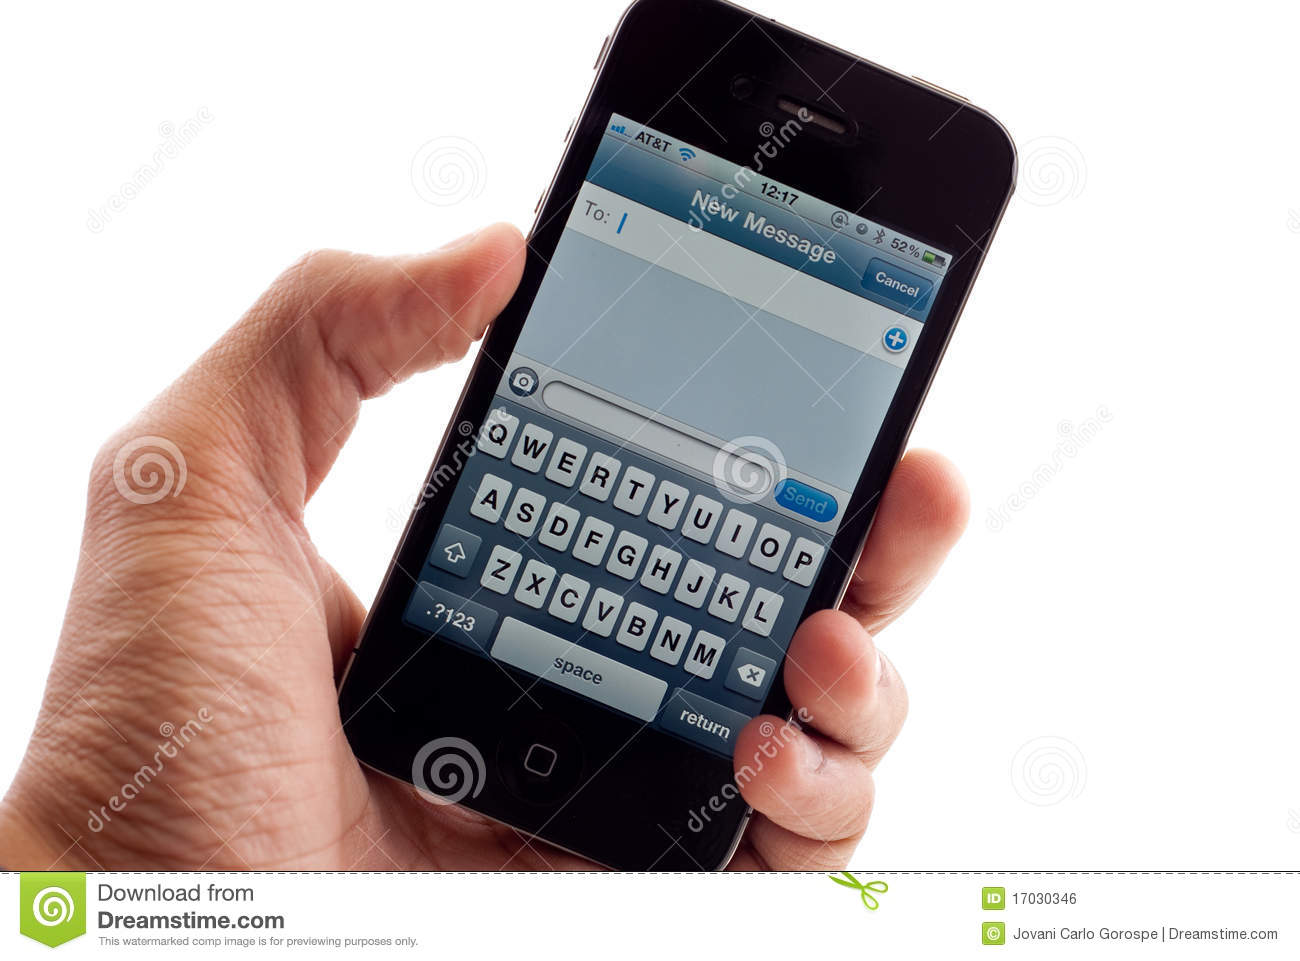 Clipart for text messages iphone.